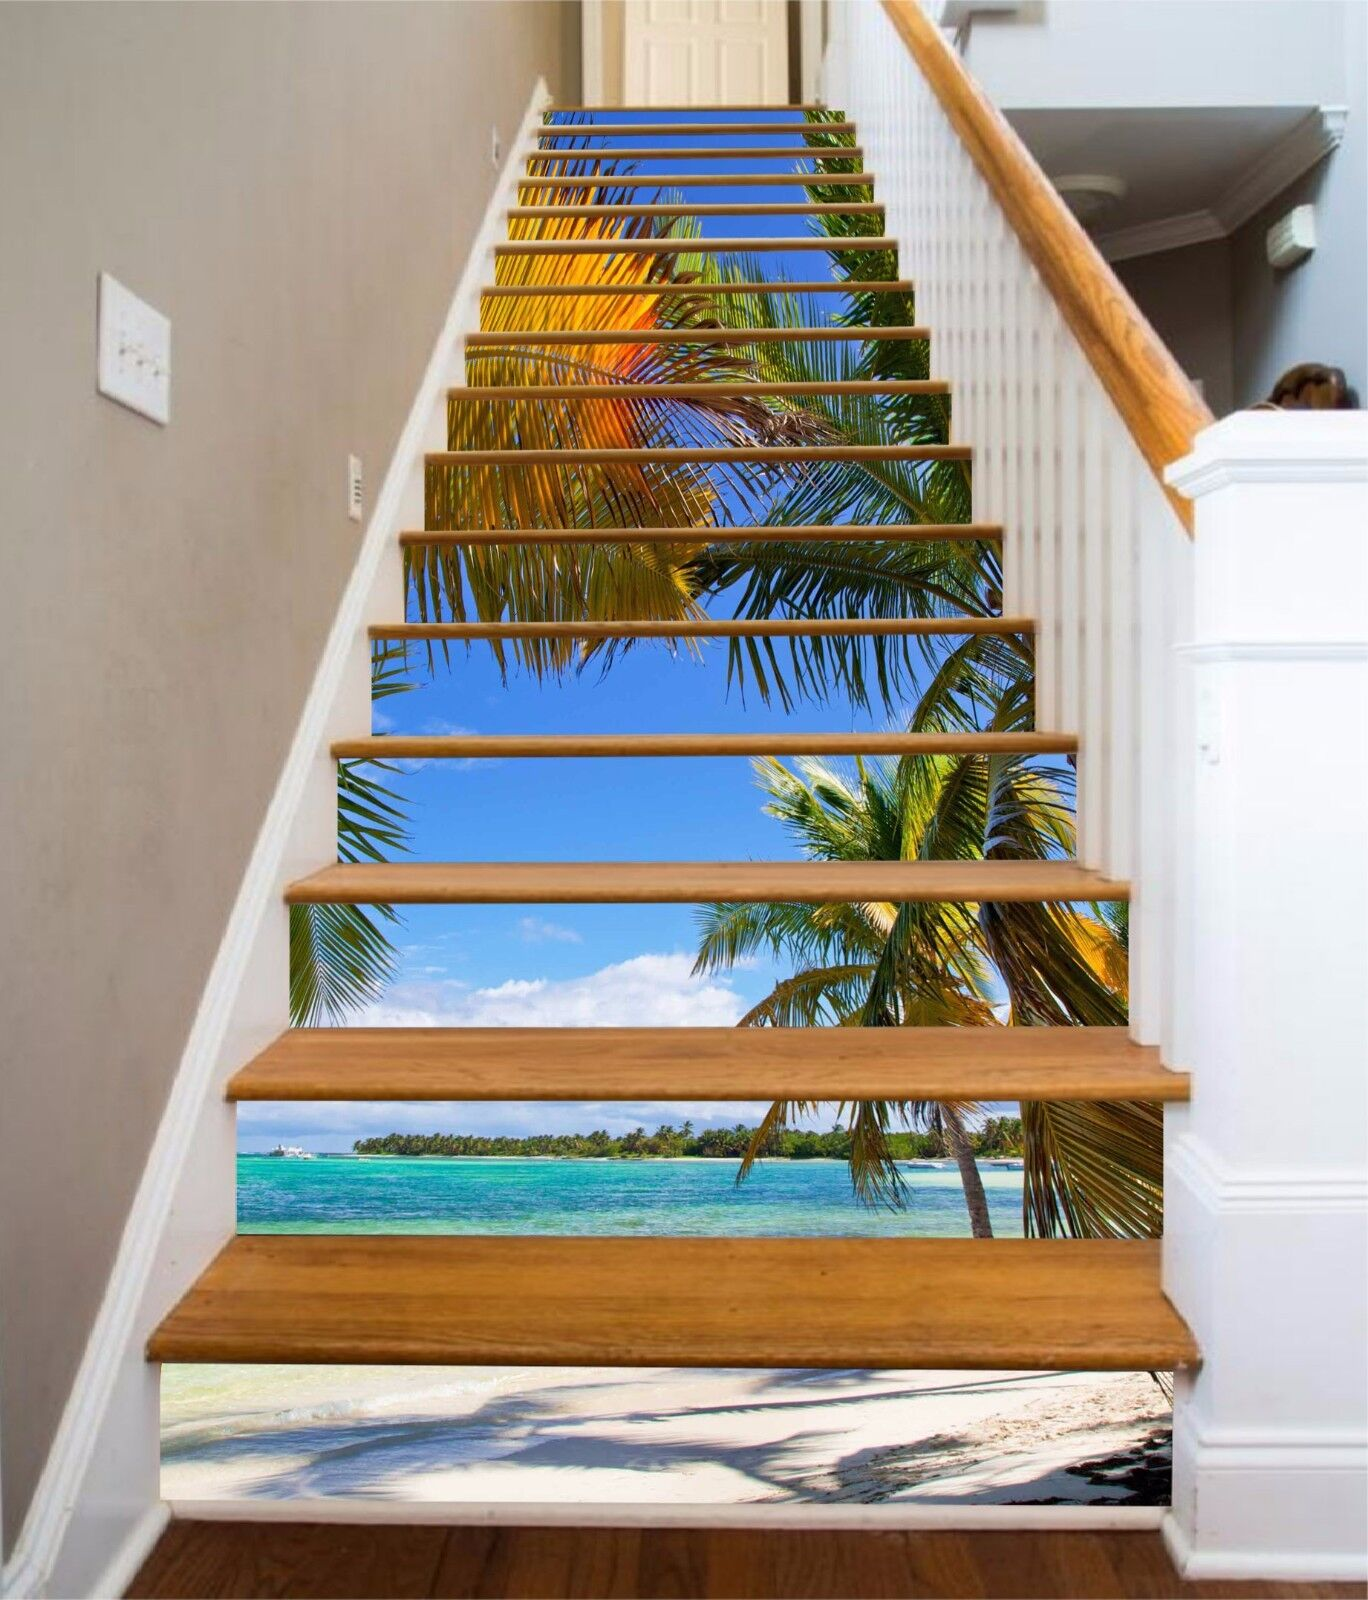 3D Beach View View View 232 Stairs Risers Decoration Photo Mural Vinyl Decal Wallpaper US 3a2a31